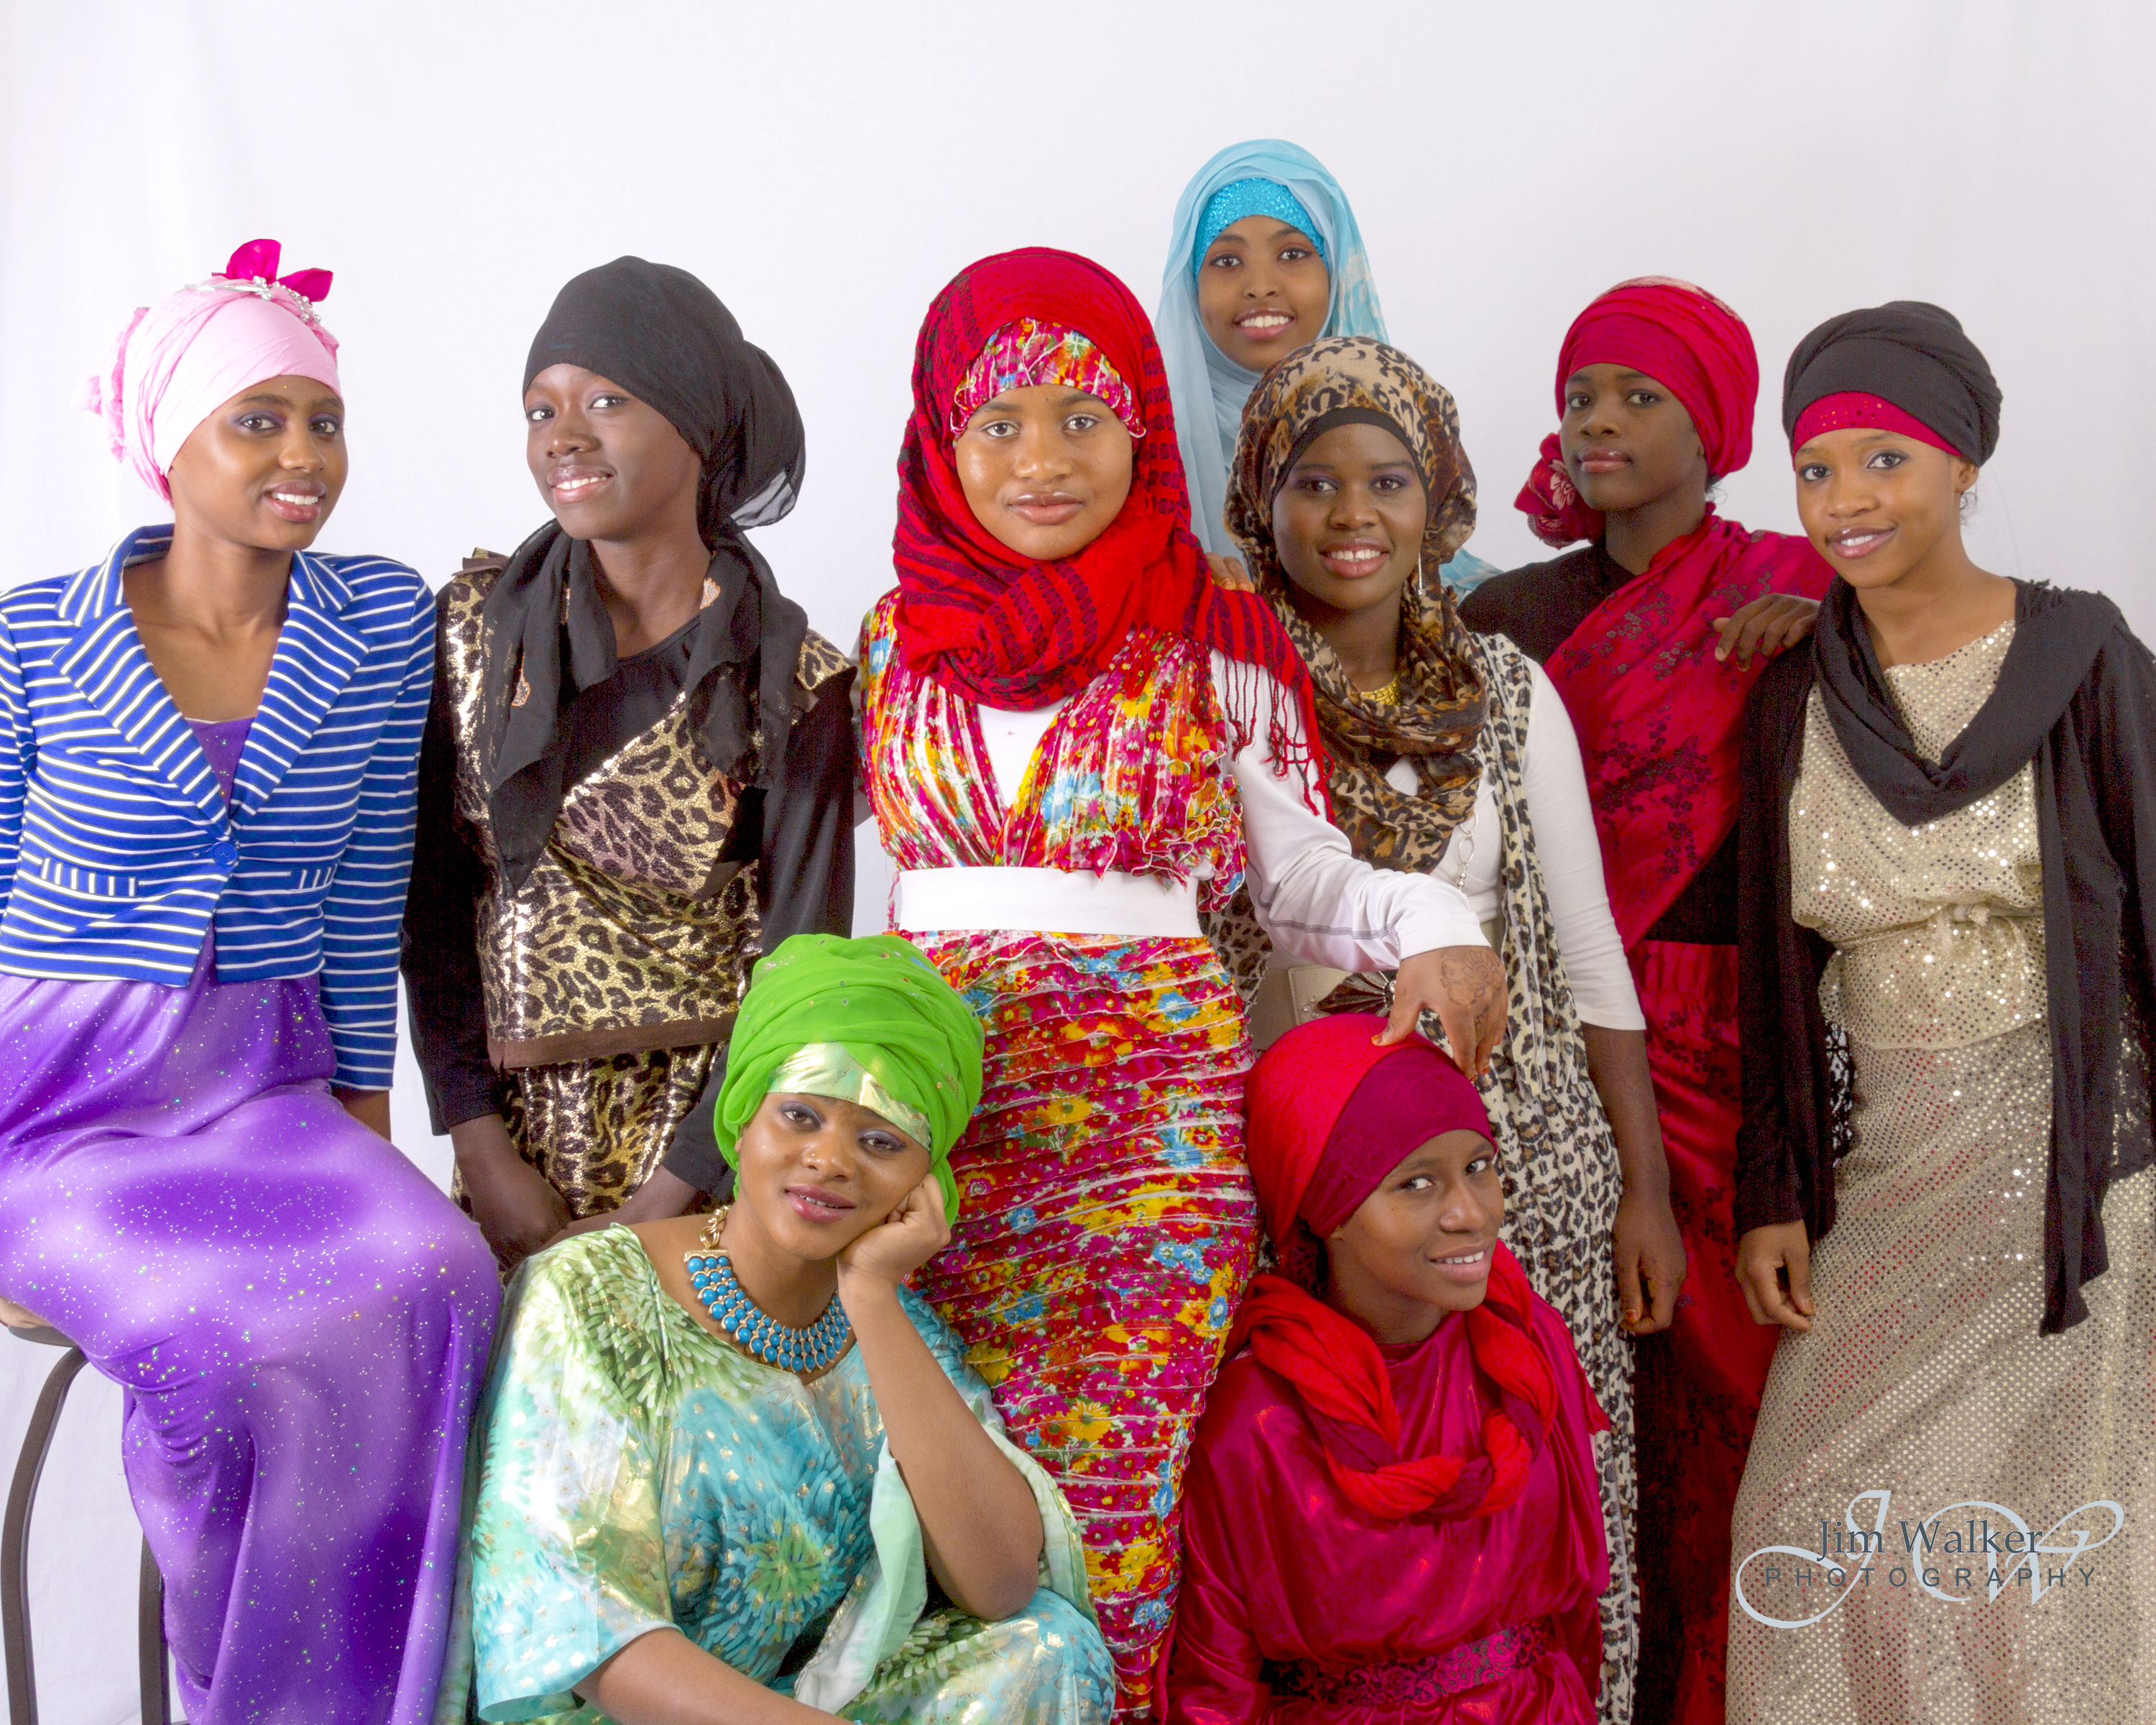 Somali Teenage Fashion Designer In Lewiston Maine Creates Eye Catching Designers For Muslim Women